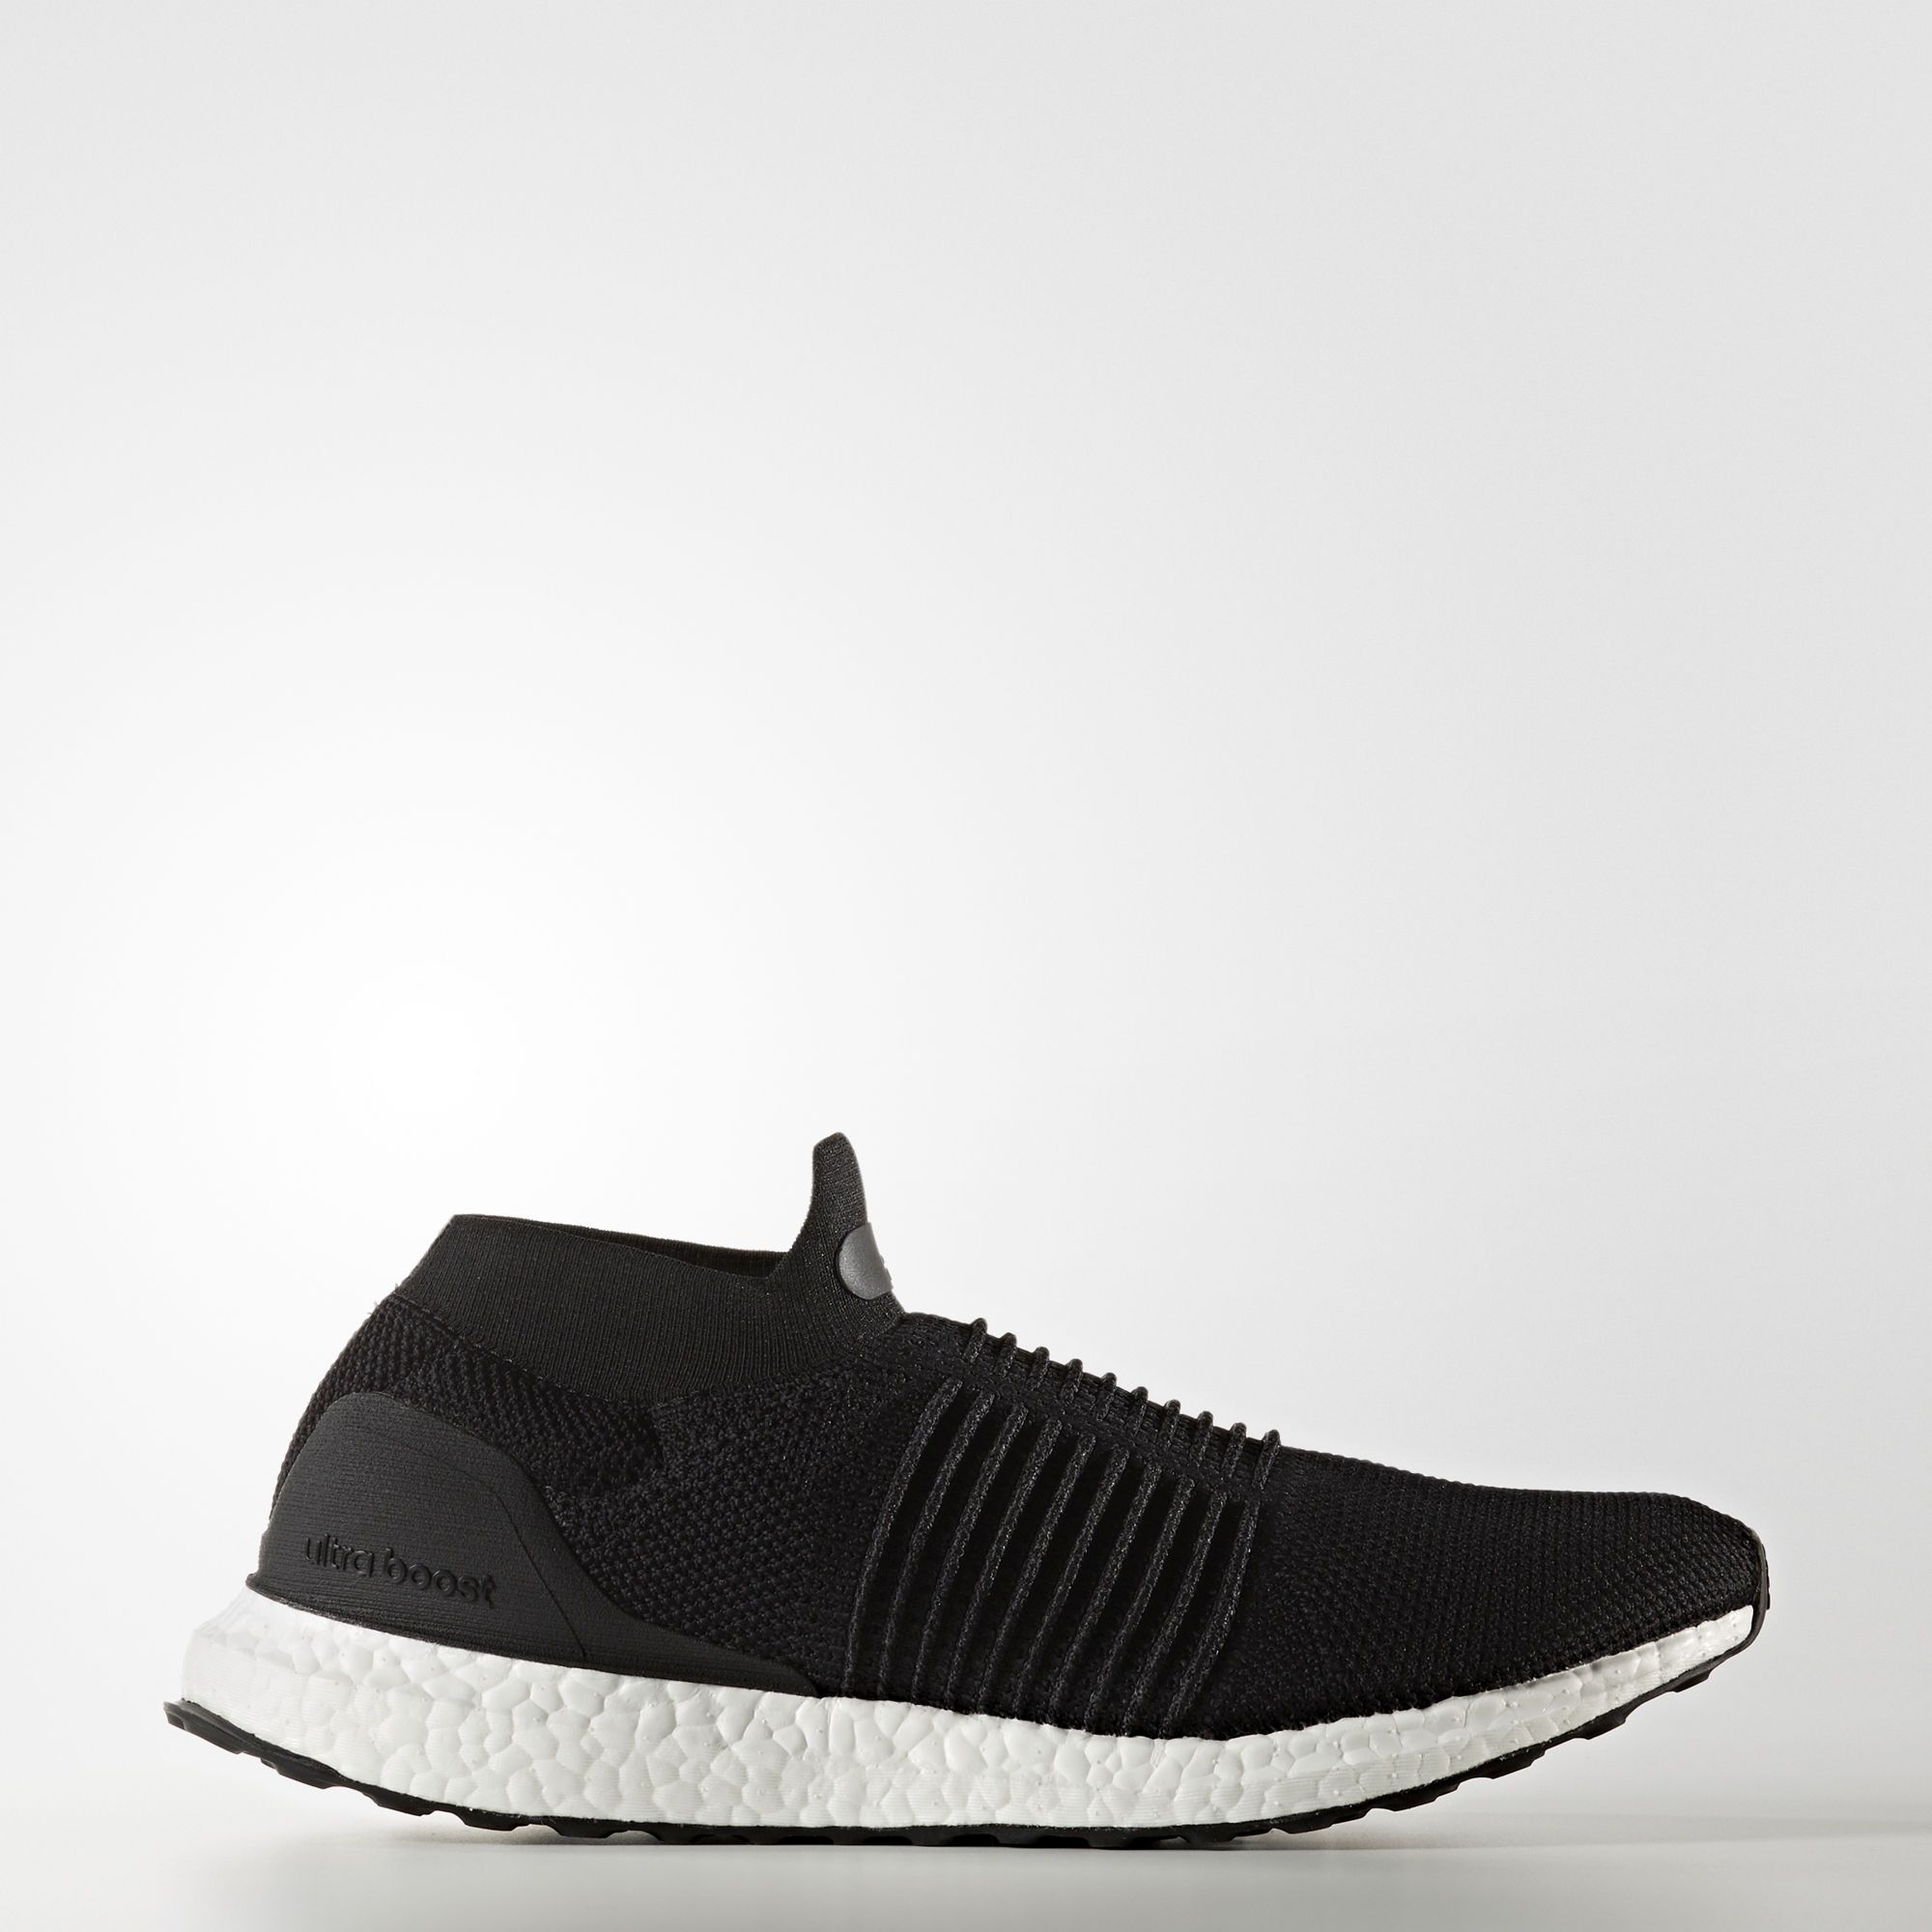 c1f97ef64 ULTRA BOOST LACELESS Adidas Running Shoes